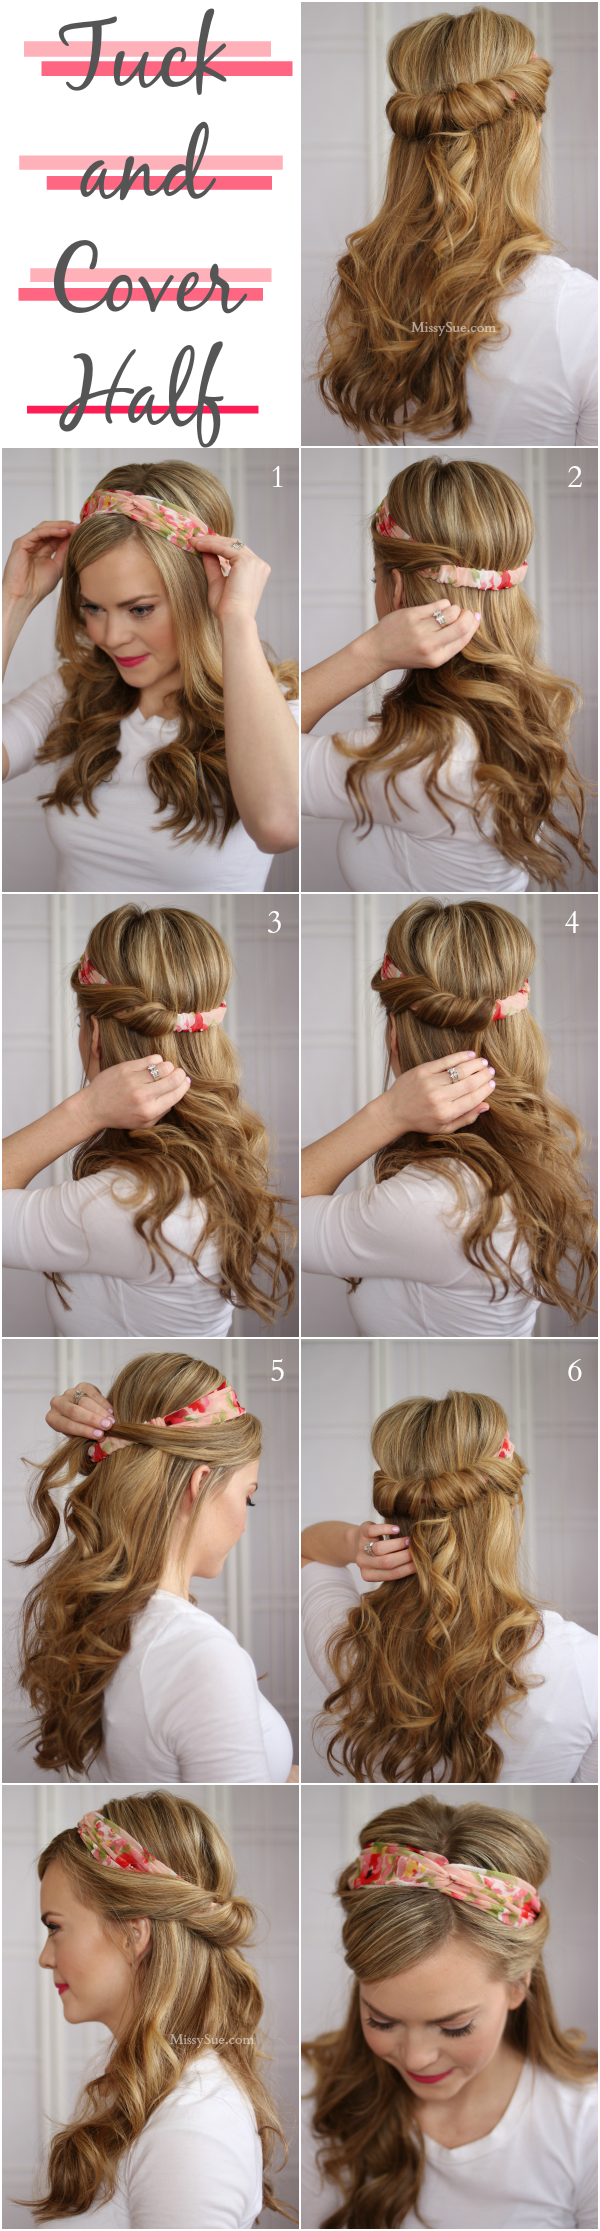 Top 10 Lazy Girl Hairstyle Tips That You Can Make It For Less Than a ...